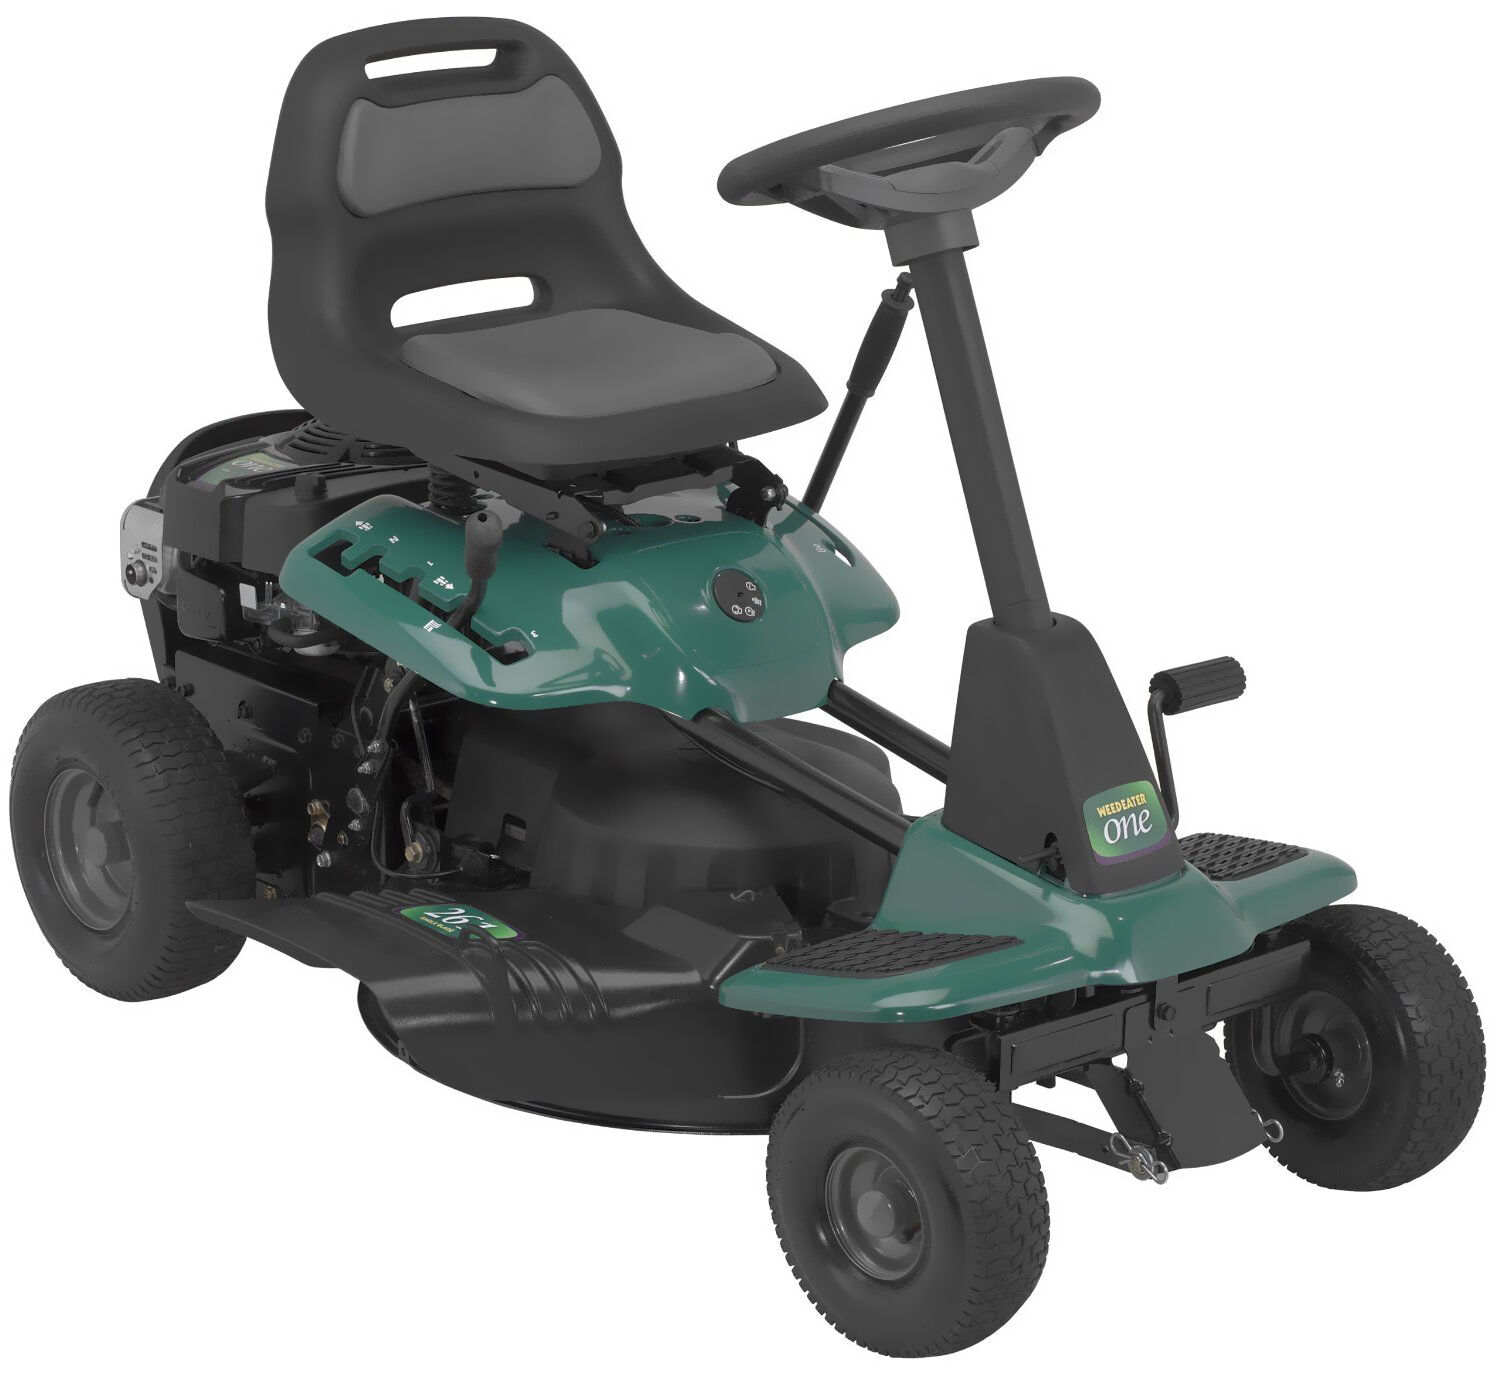 Top 10 Riding Lawn Mowers Ebay